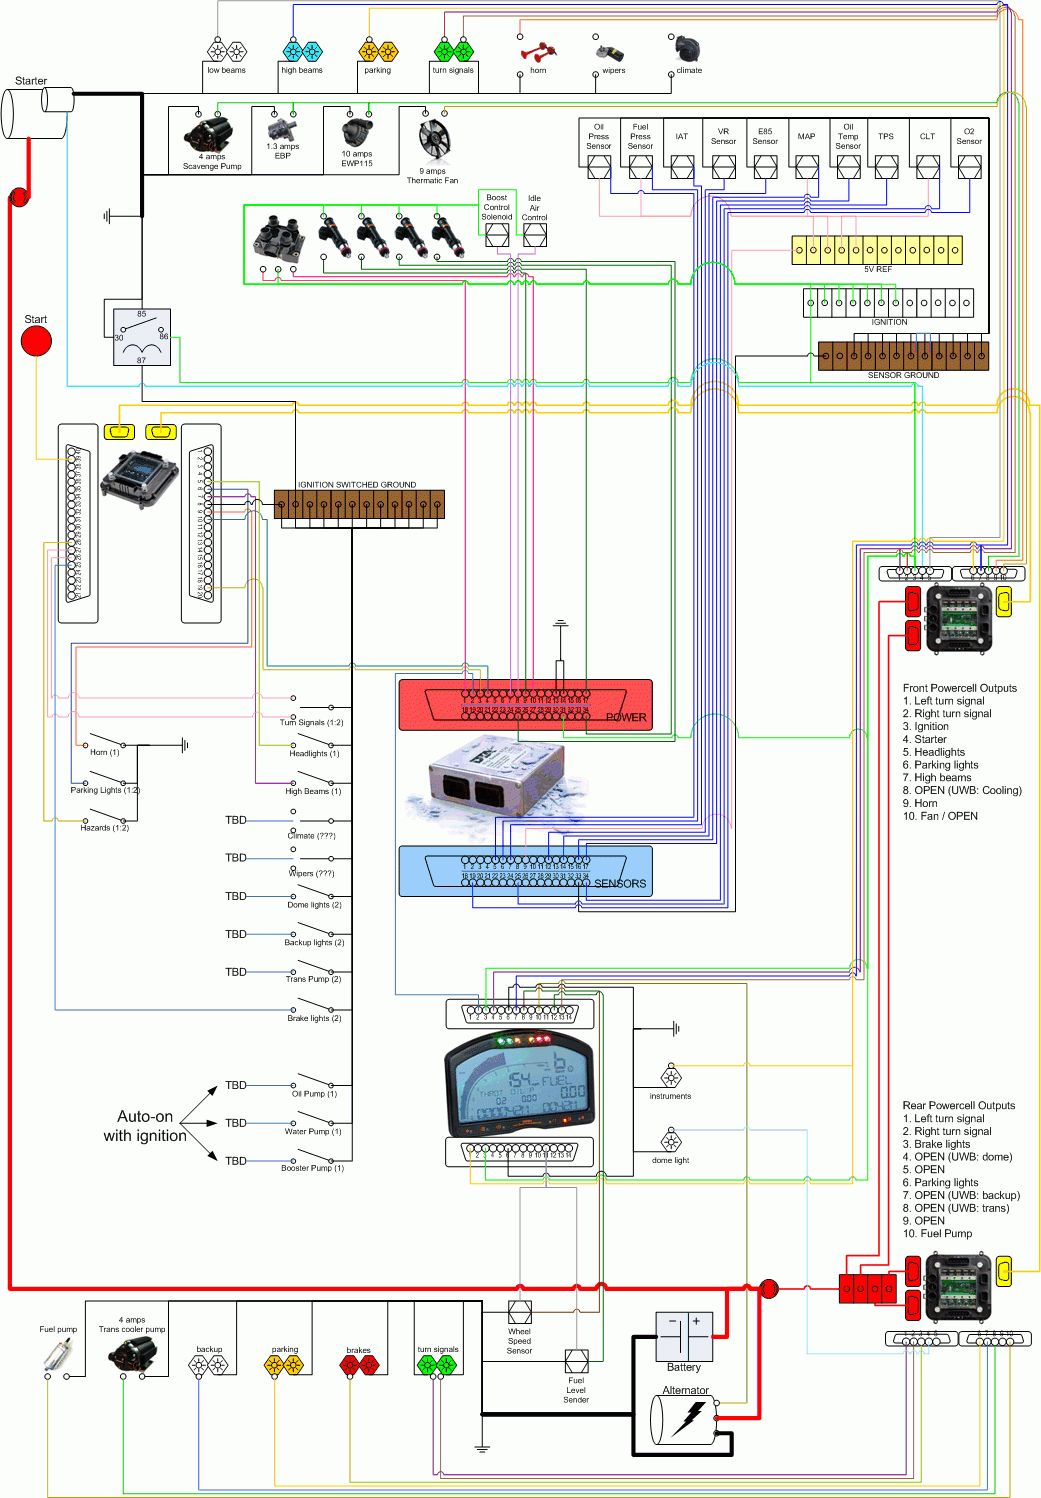 nhra car wiring diagram wiring diagram advance drag race car wiring diagram owner manual wiring [ 1041 x 1498 Pixel ]